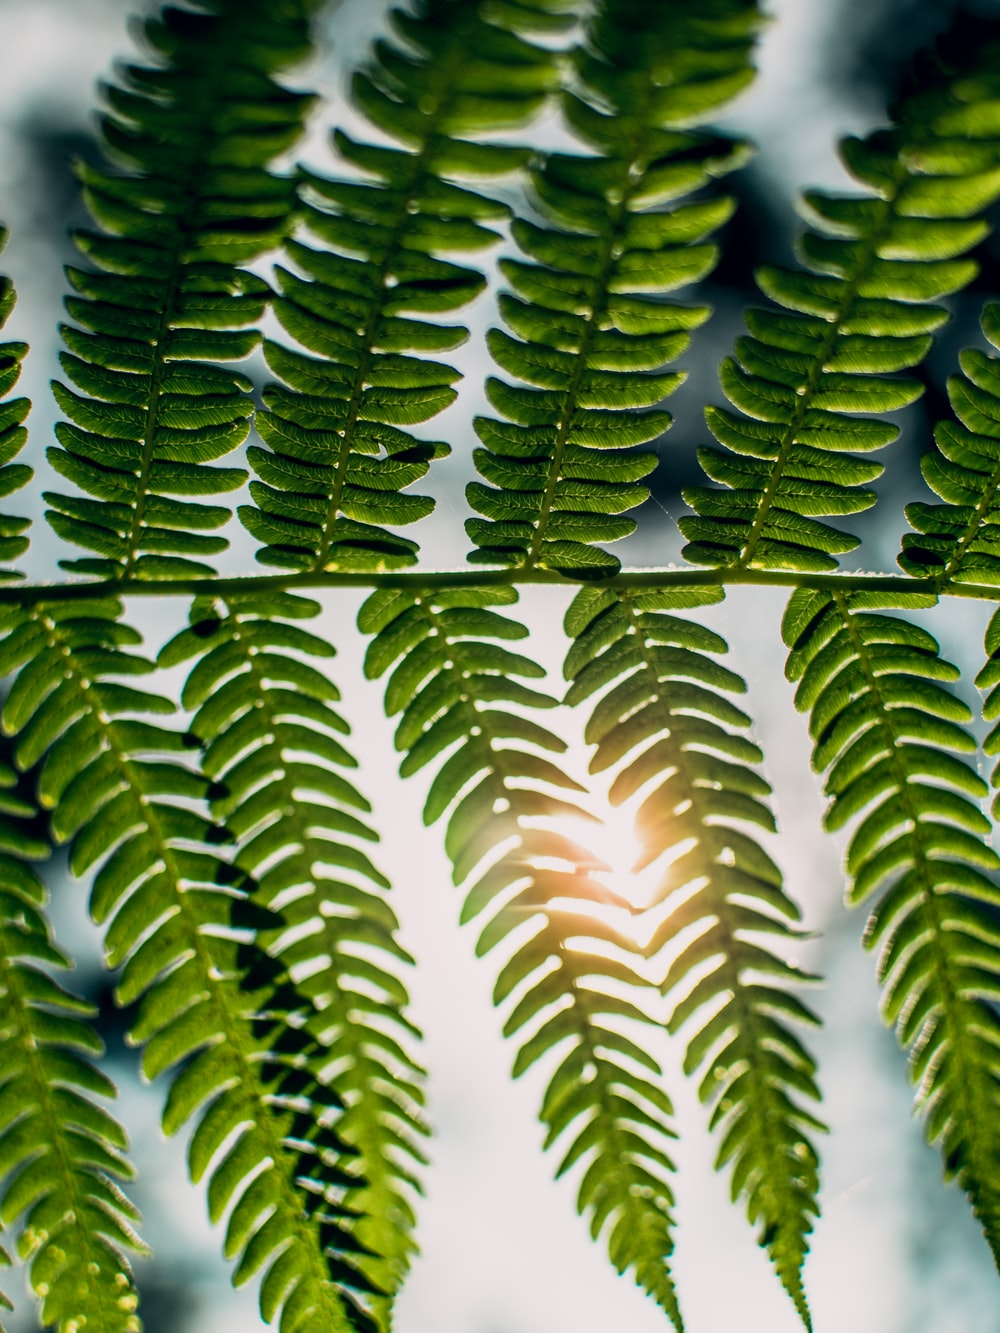 shallow focus photography of sunlight passing through fern plant